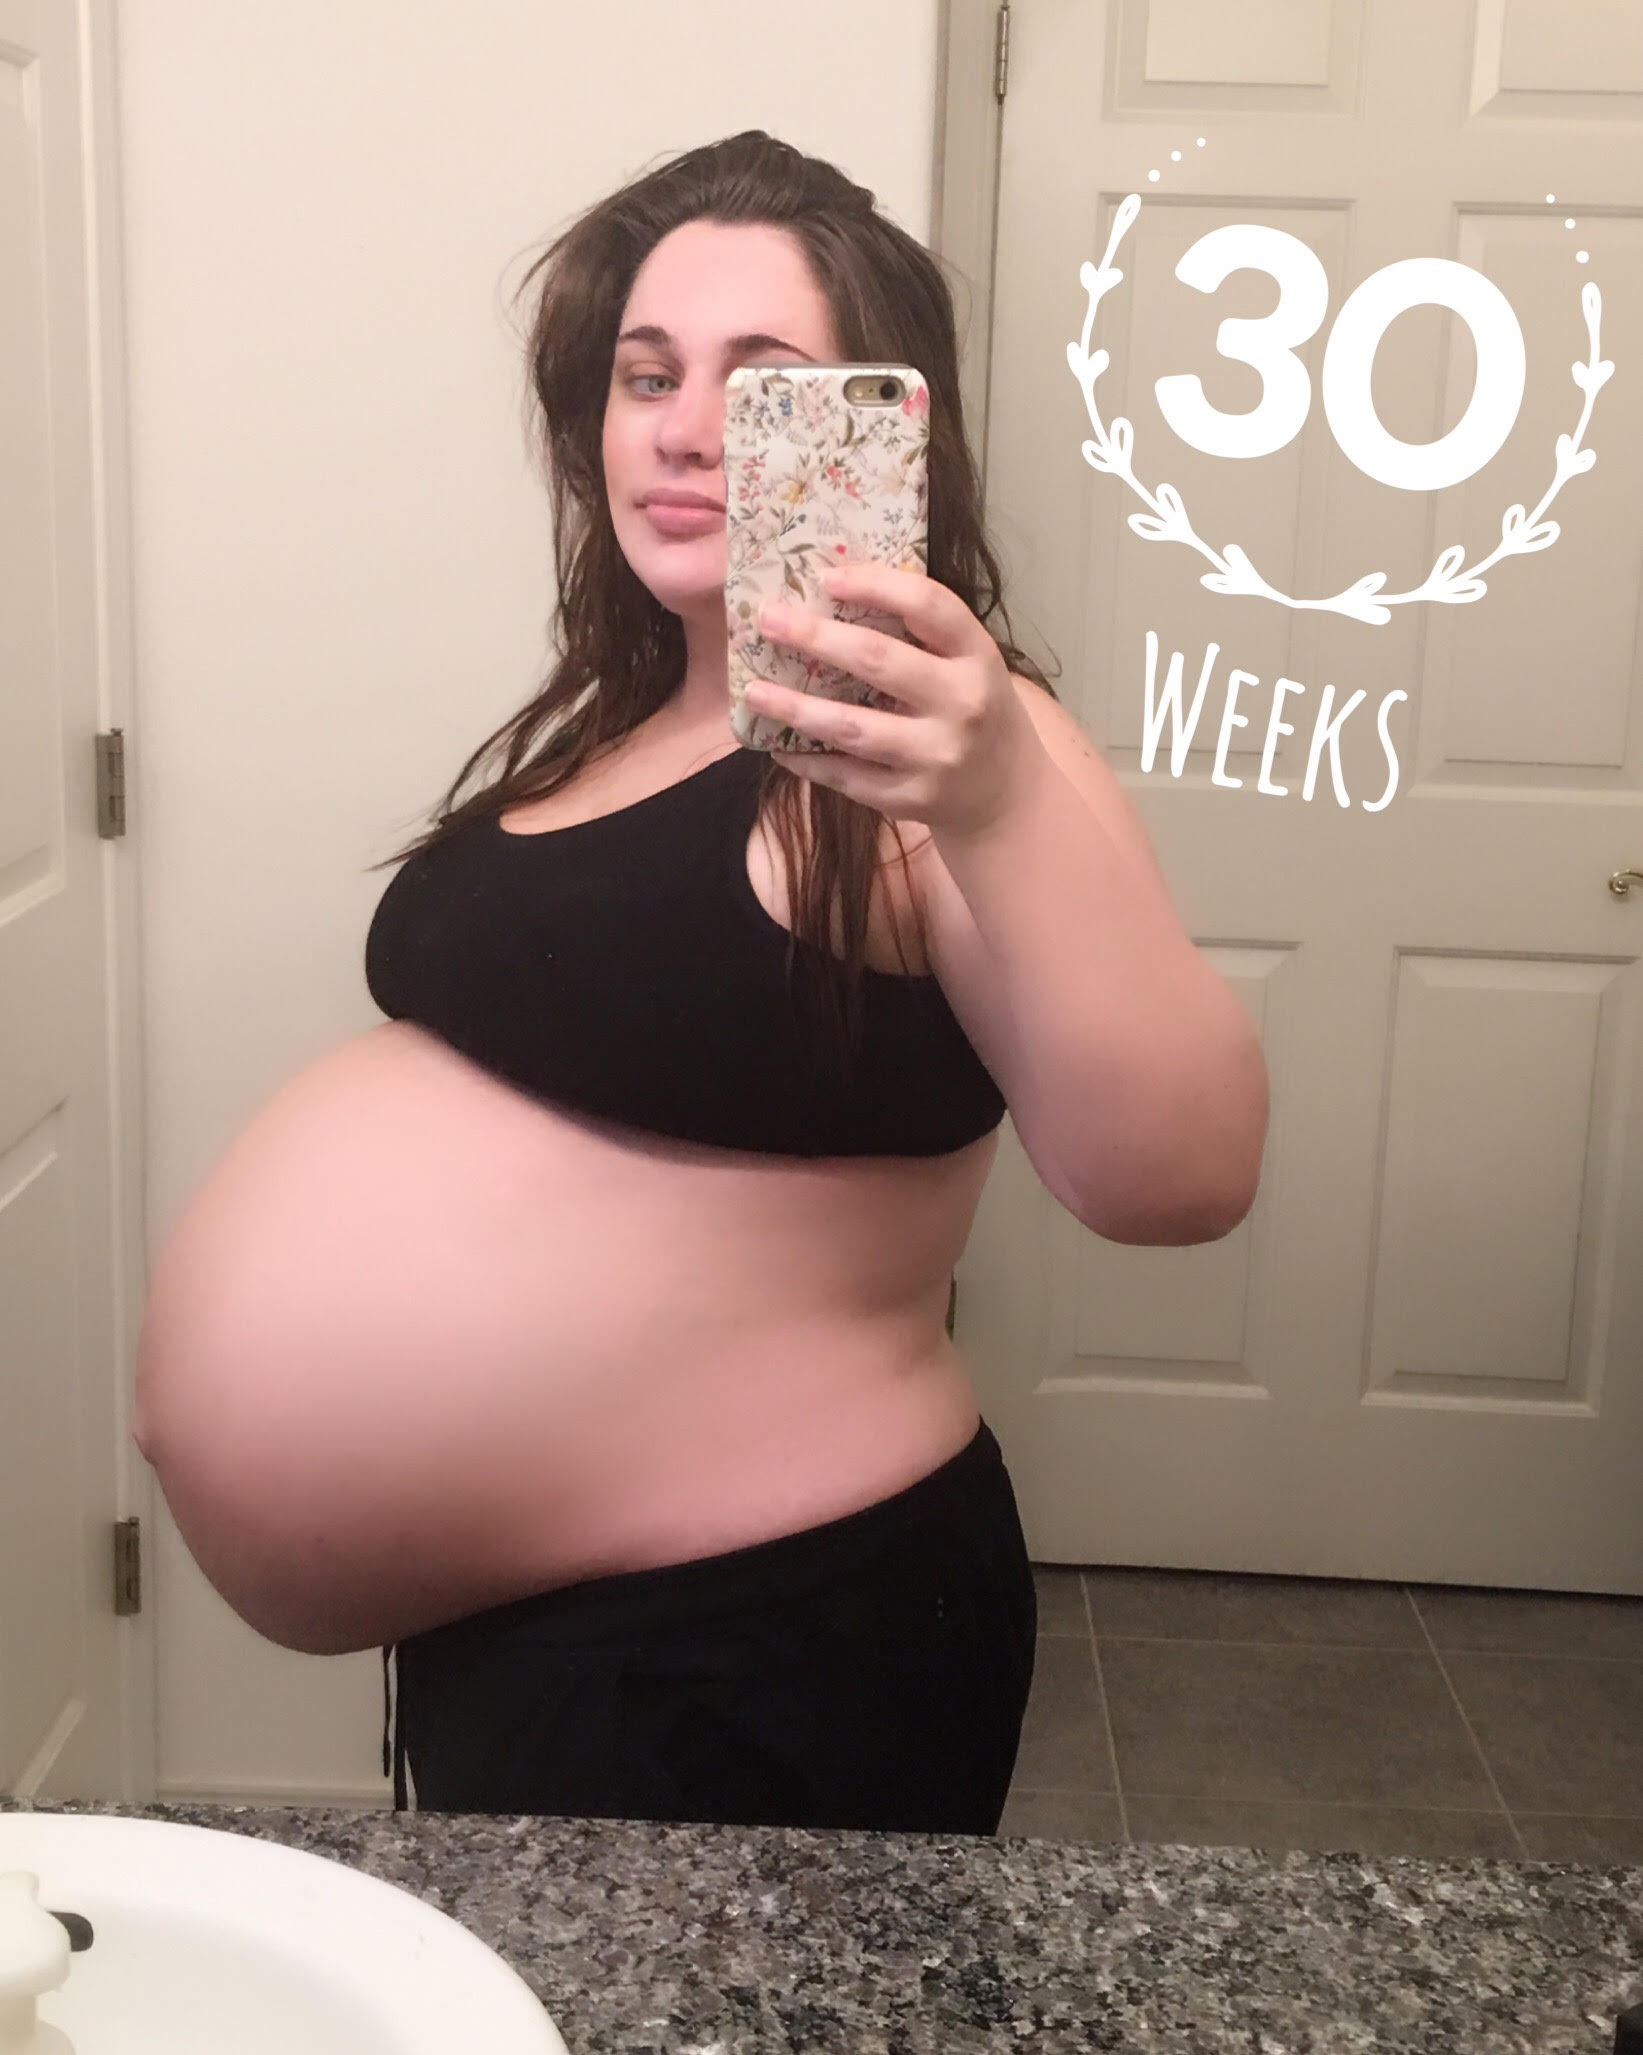 7 and half weeks pregnant